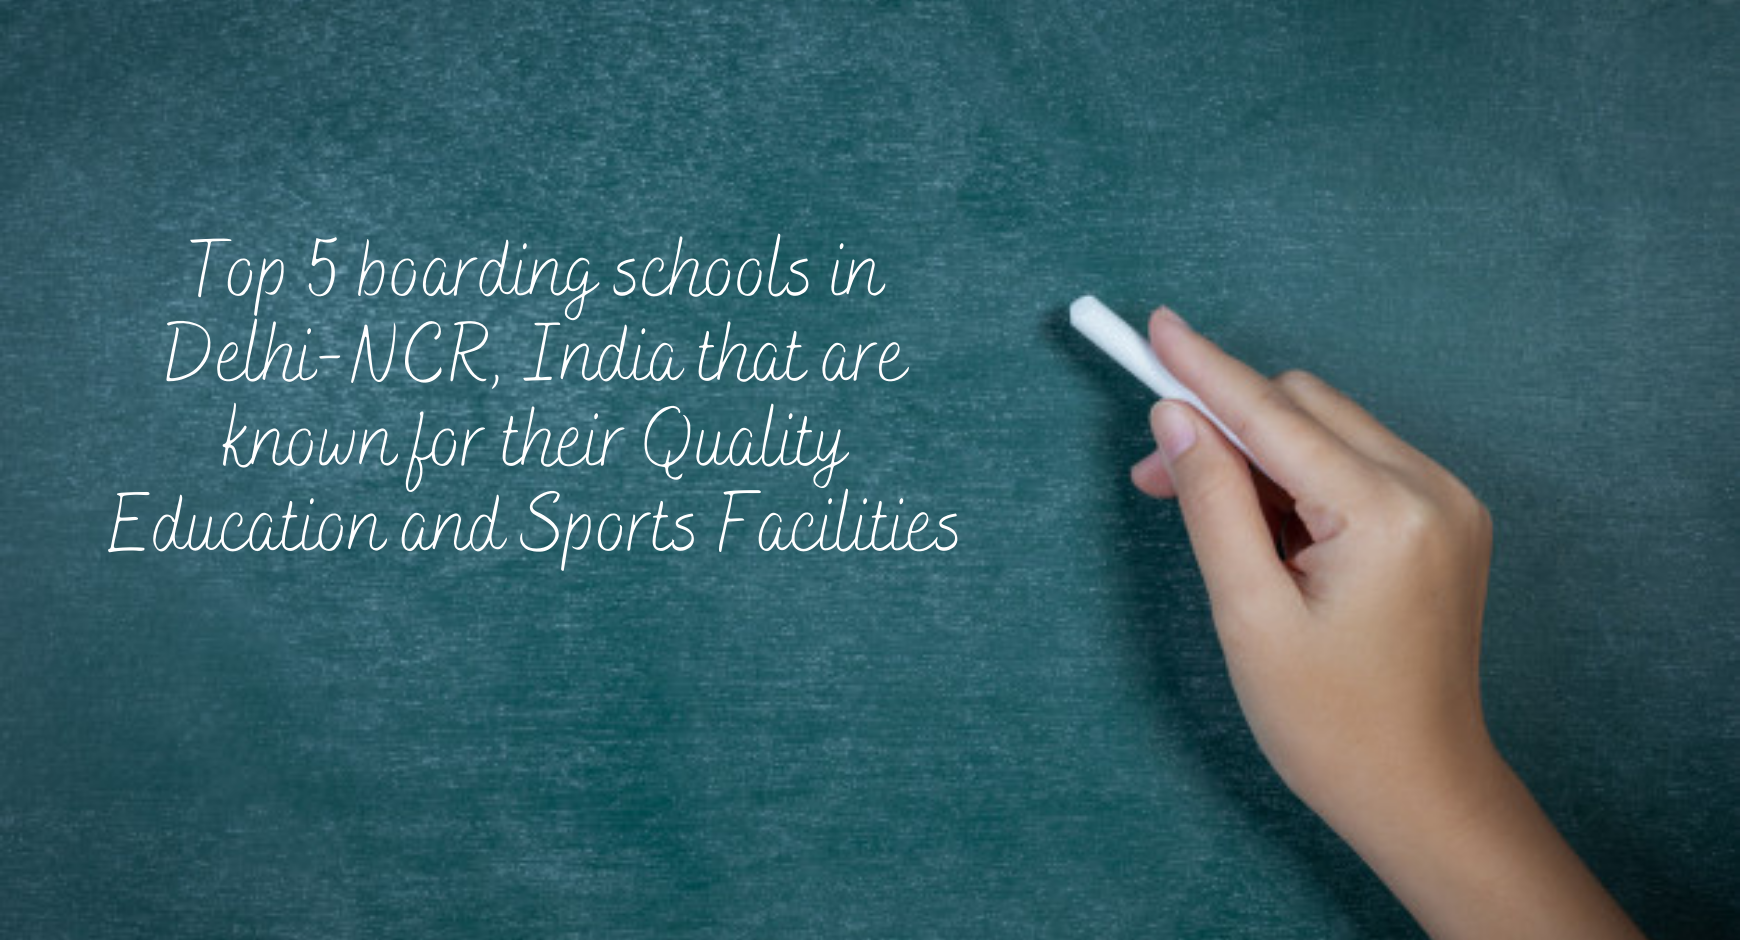 Top 5 boarding schools in Delhi-NCR, India that are known for their Quality Education and Sports Facilities